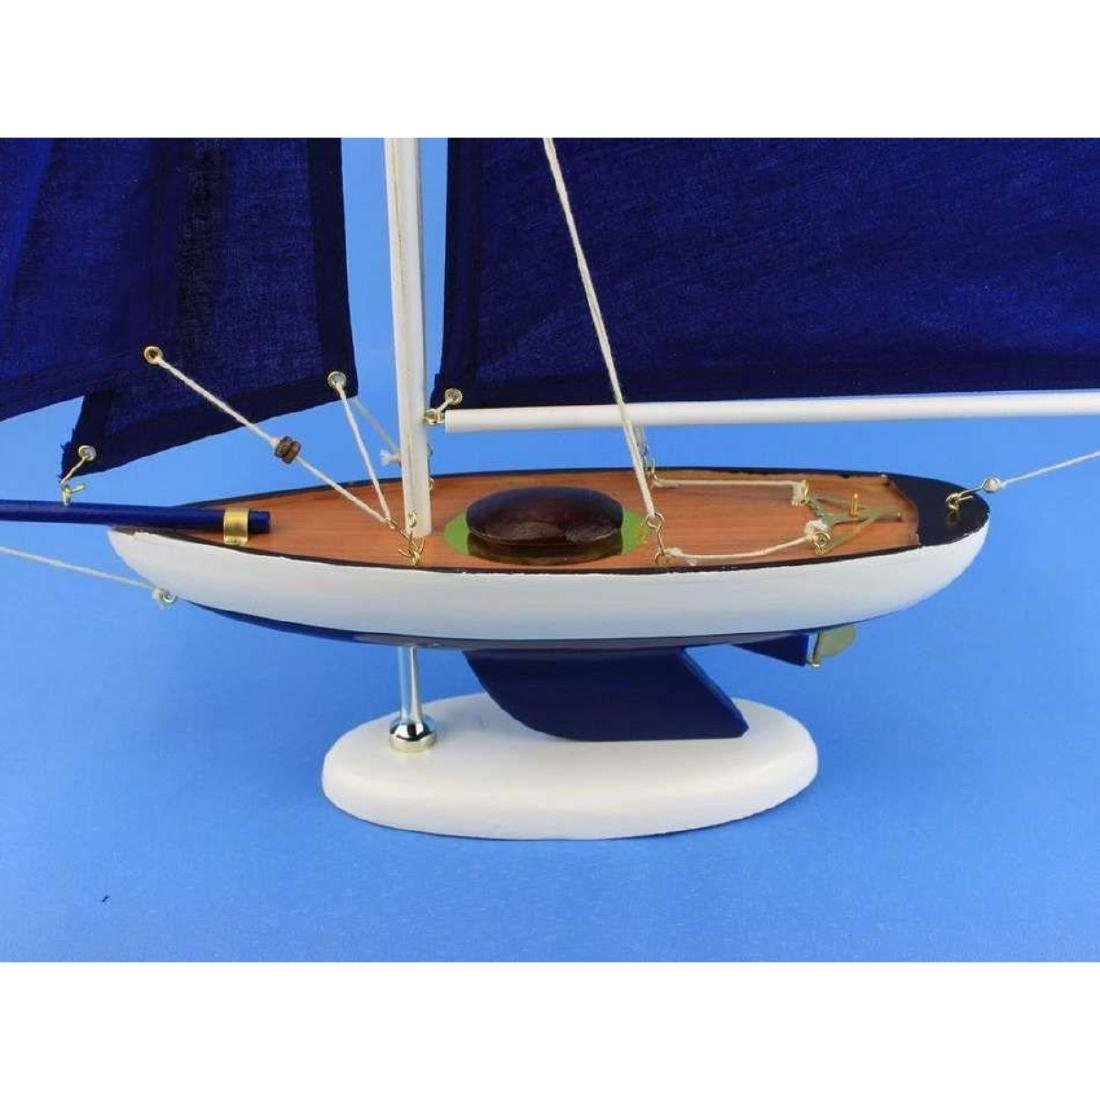 Wooden Bermuda Sloop Dark Blue Model Sailboat - 5